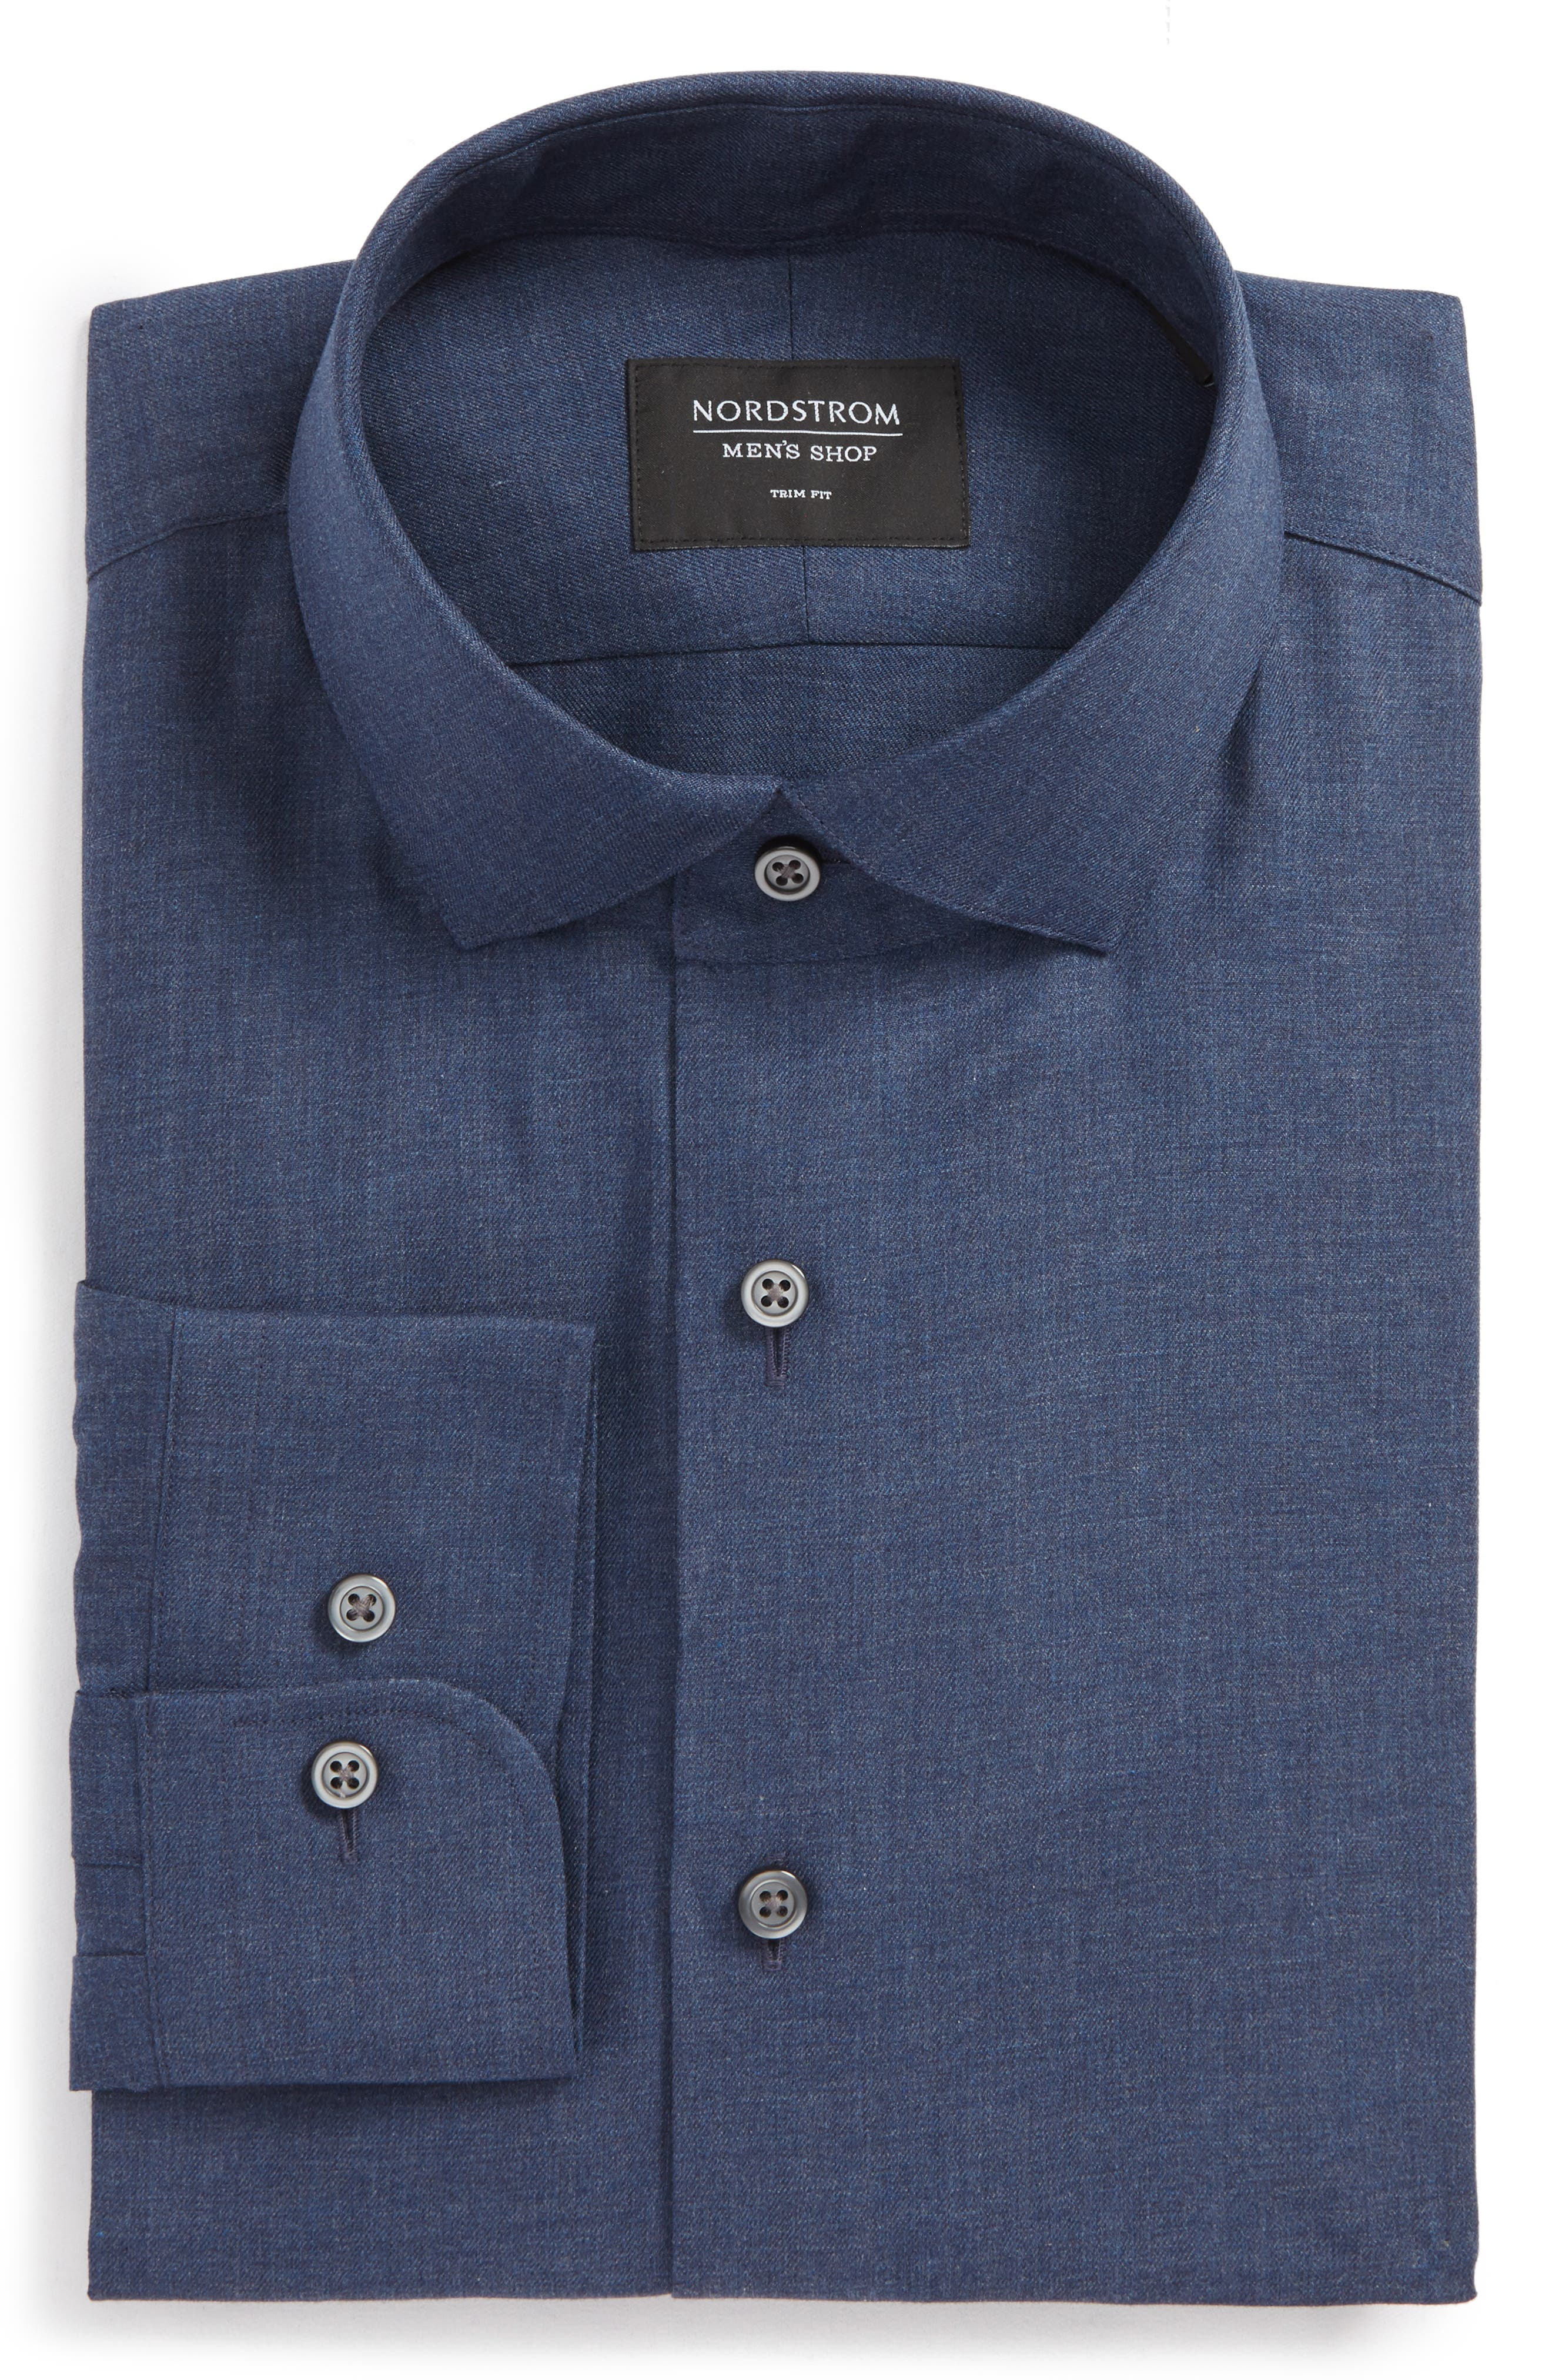 Main Image - Nordstrom Men's Shop Trim Fit Solid Dress Shirt